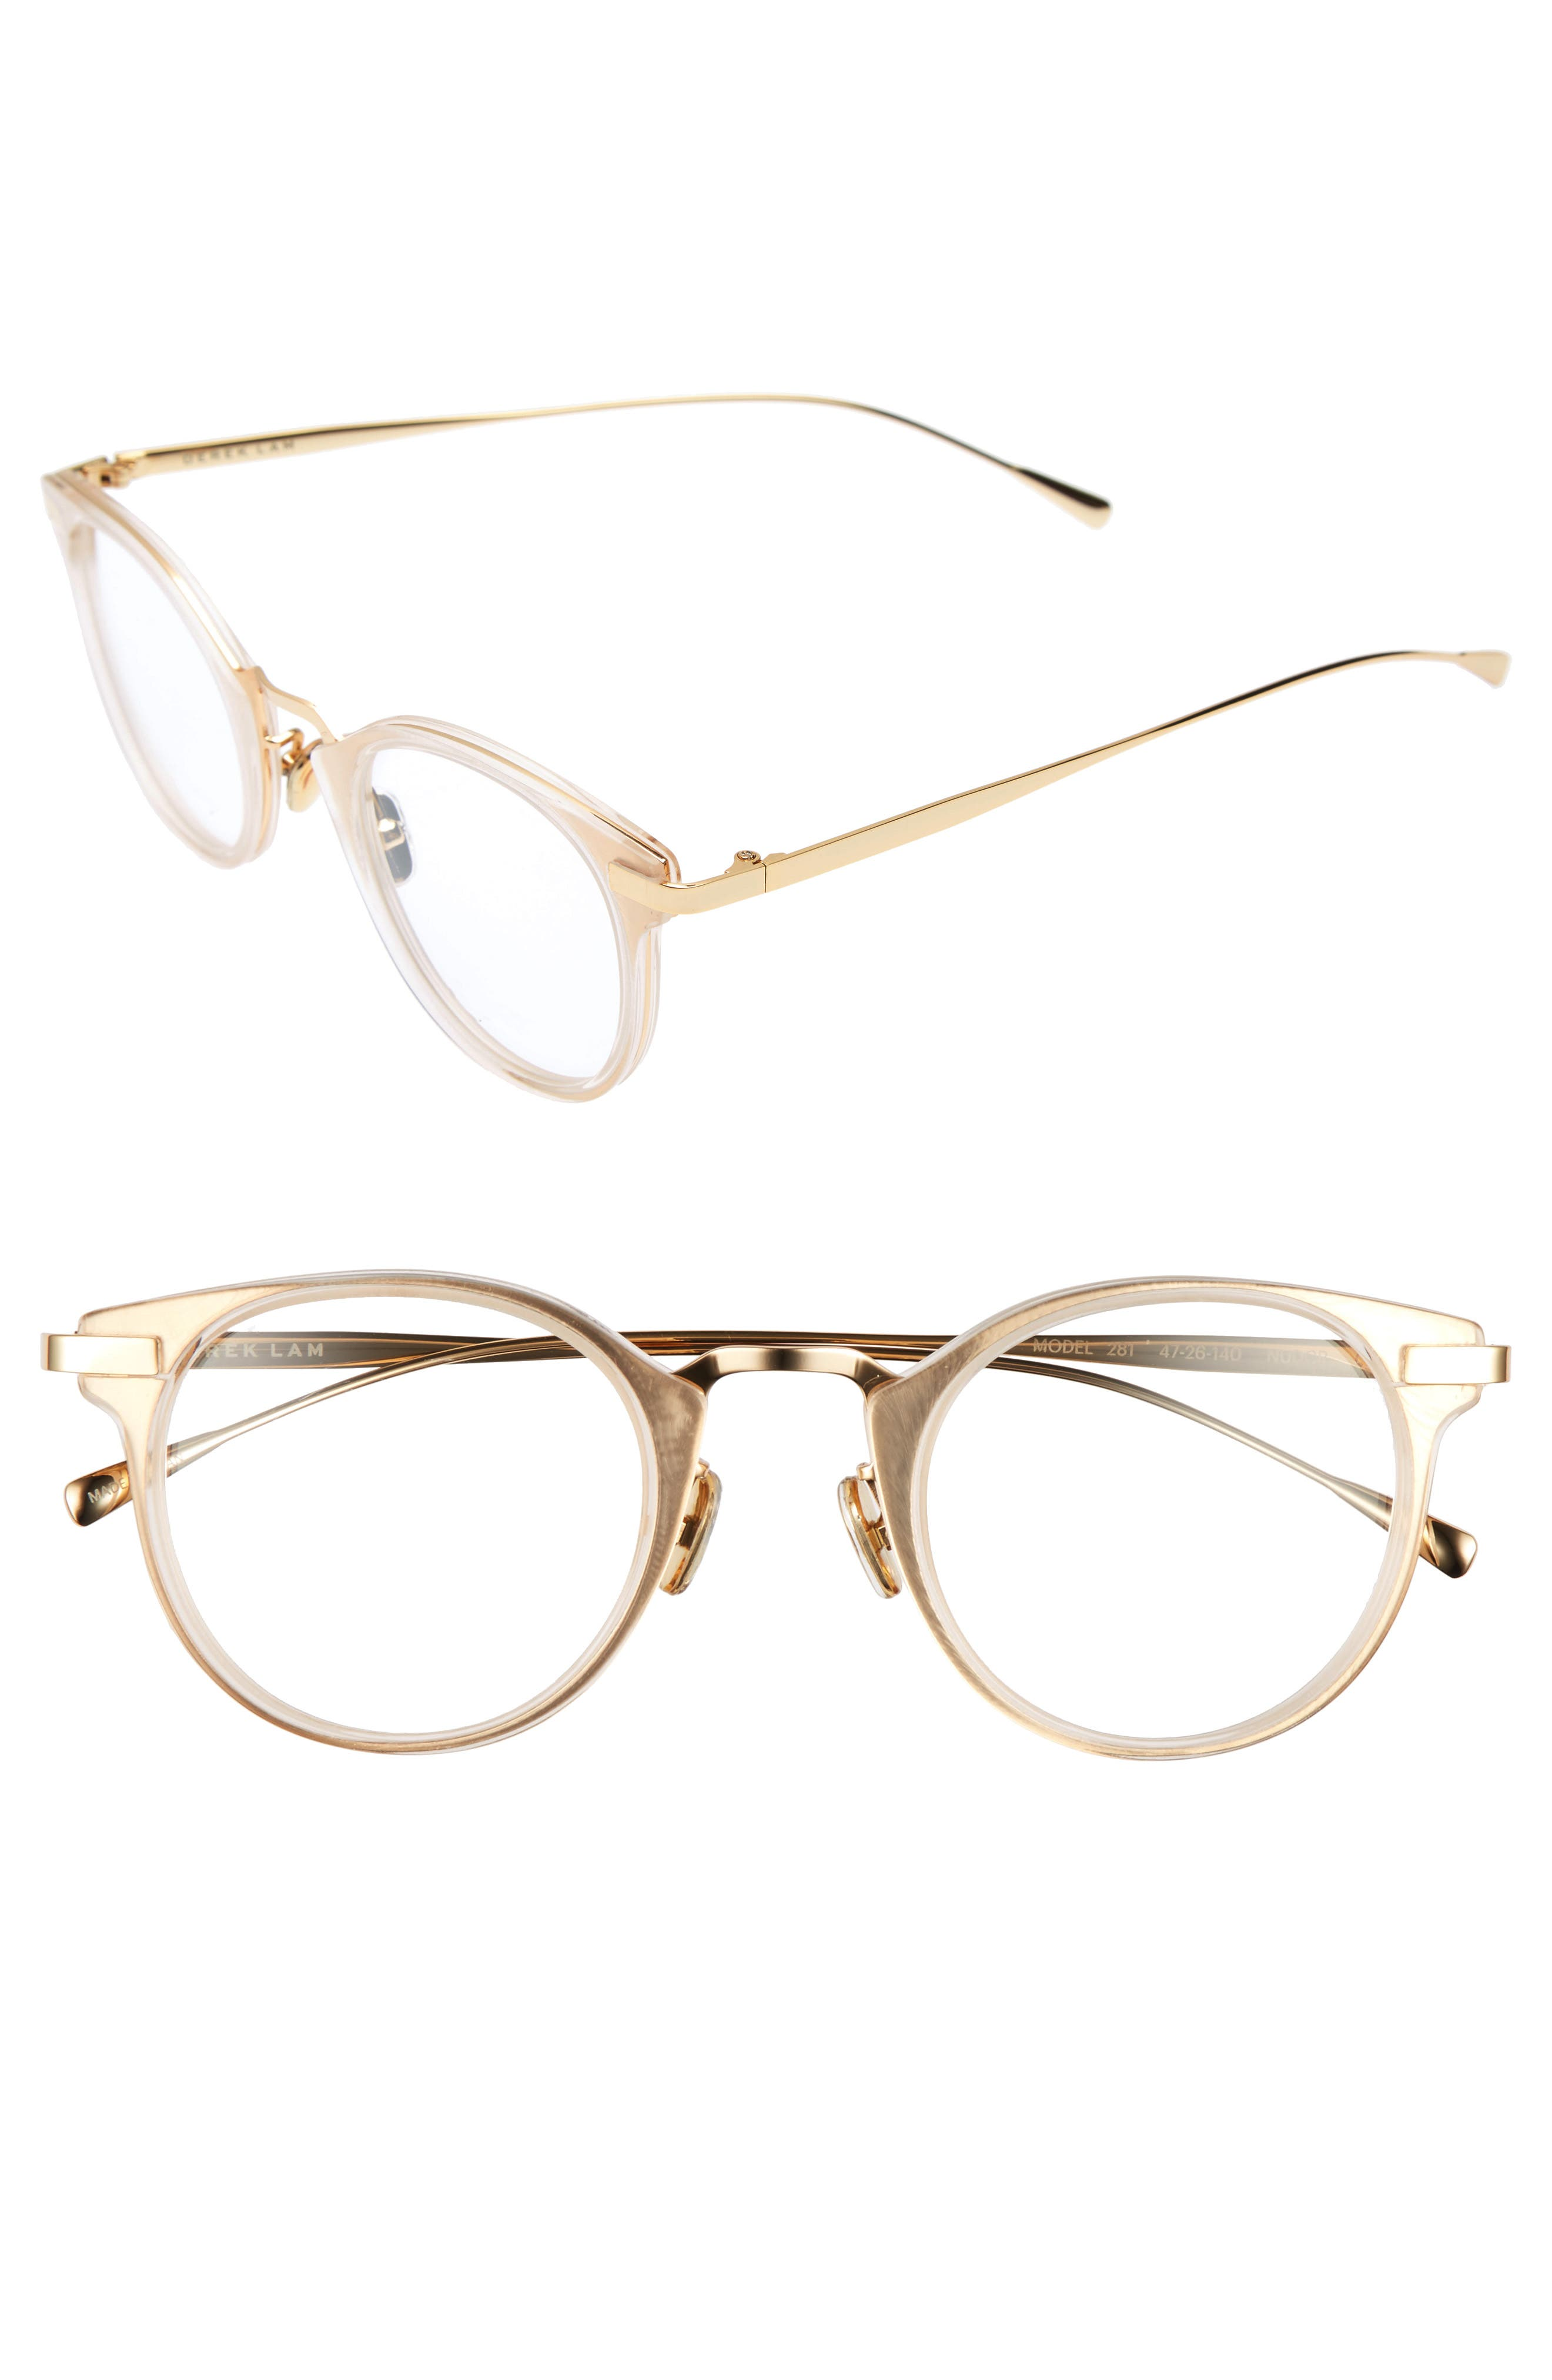 47mm Optical Glasses,                         Main,                         color, Nude Crystal